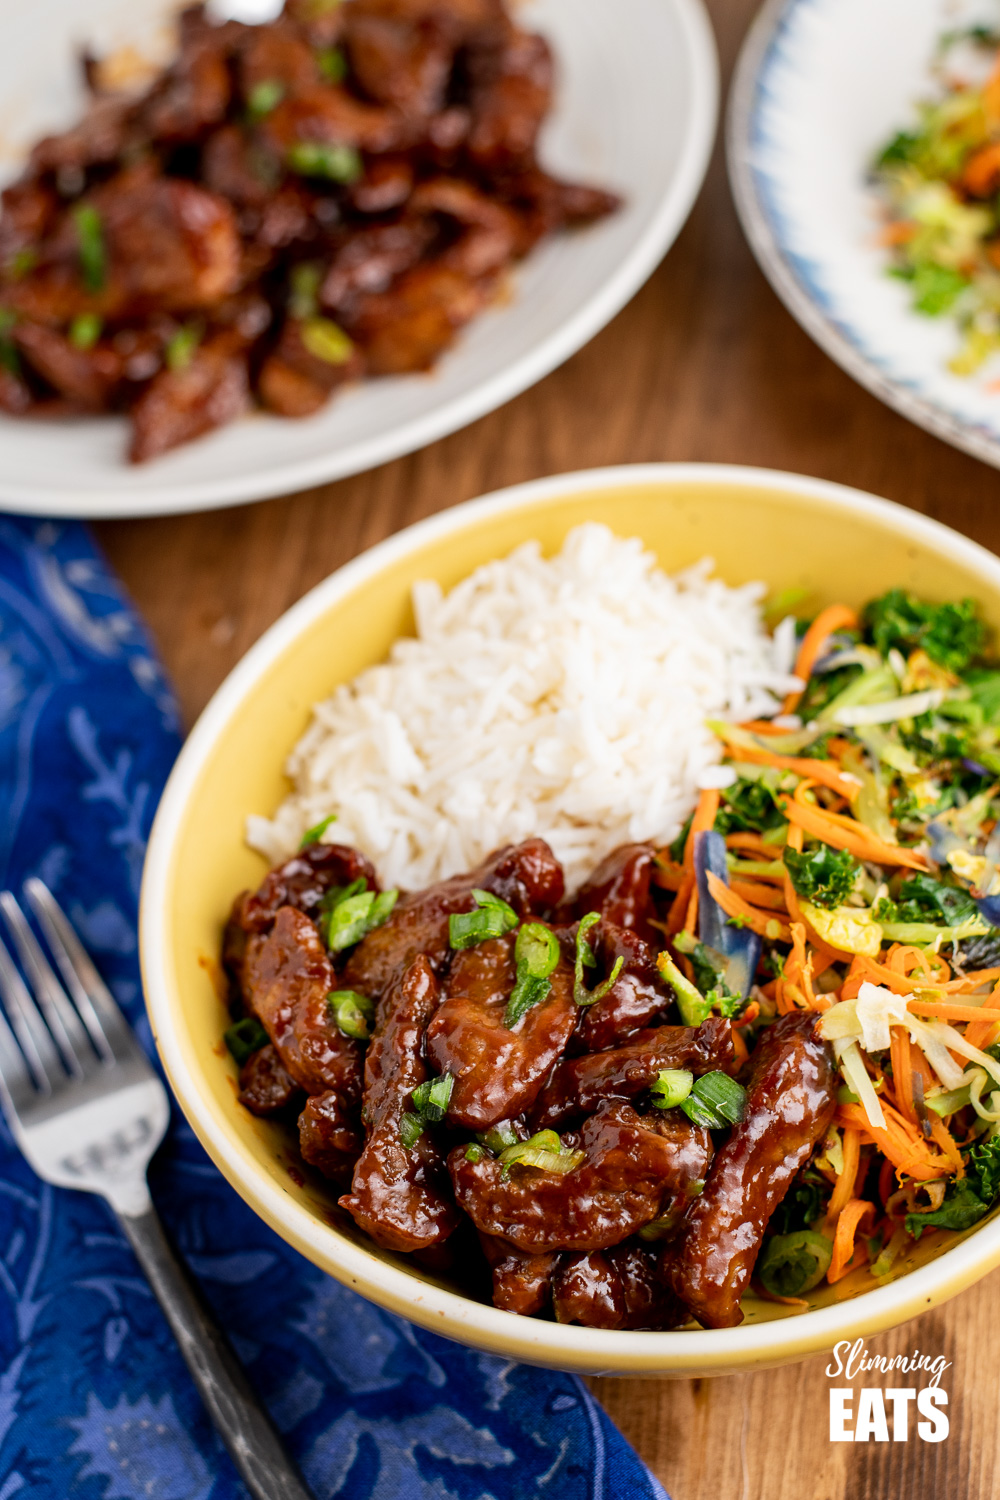 sweet chilli beef in yellow bowl with vegetables and rice.